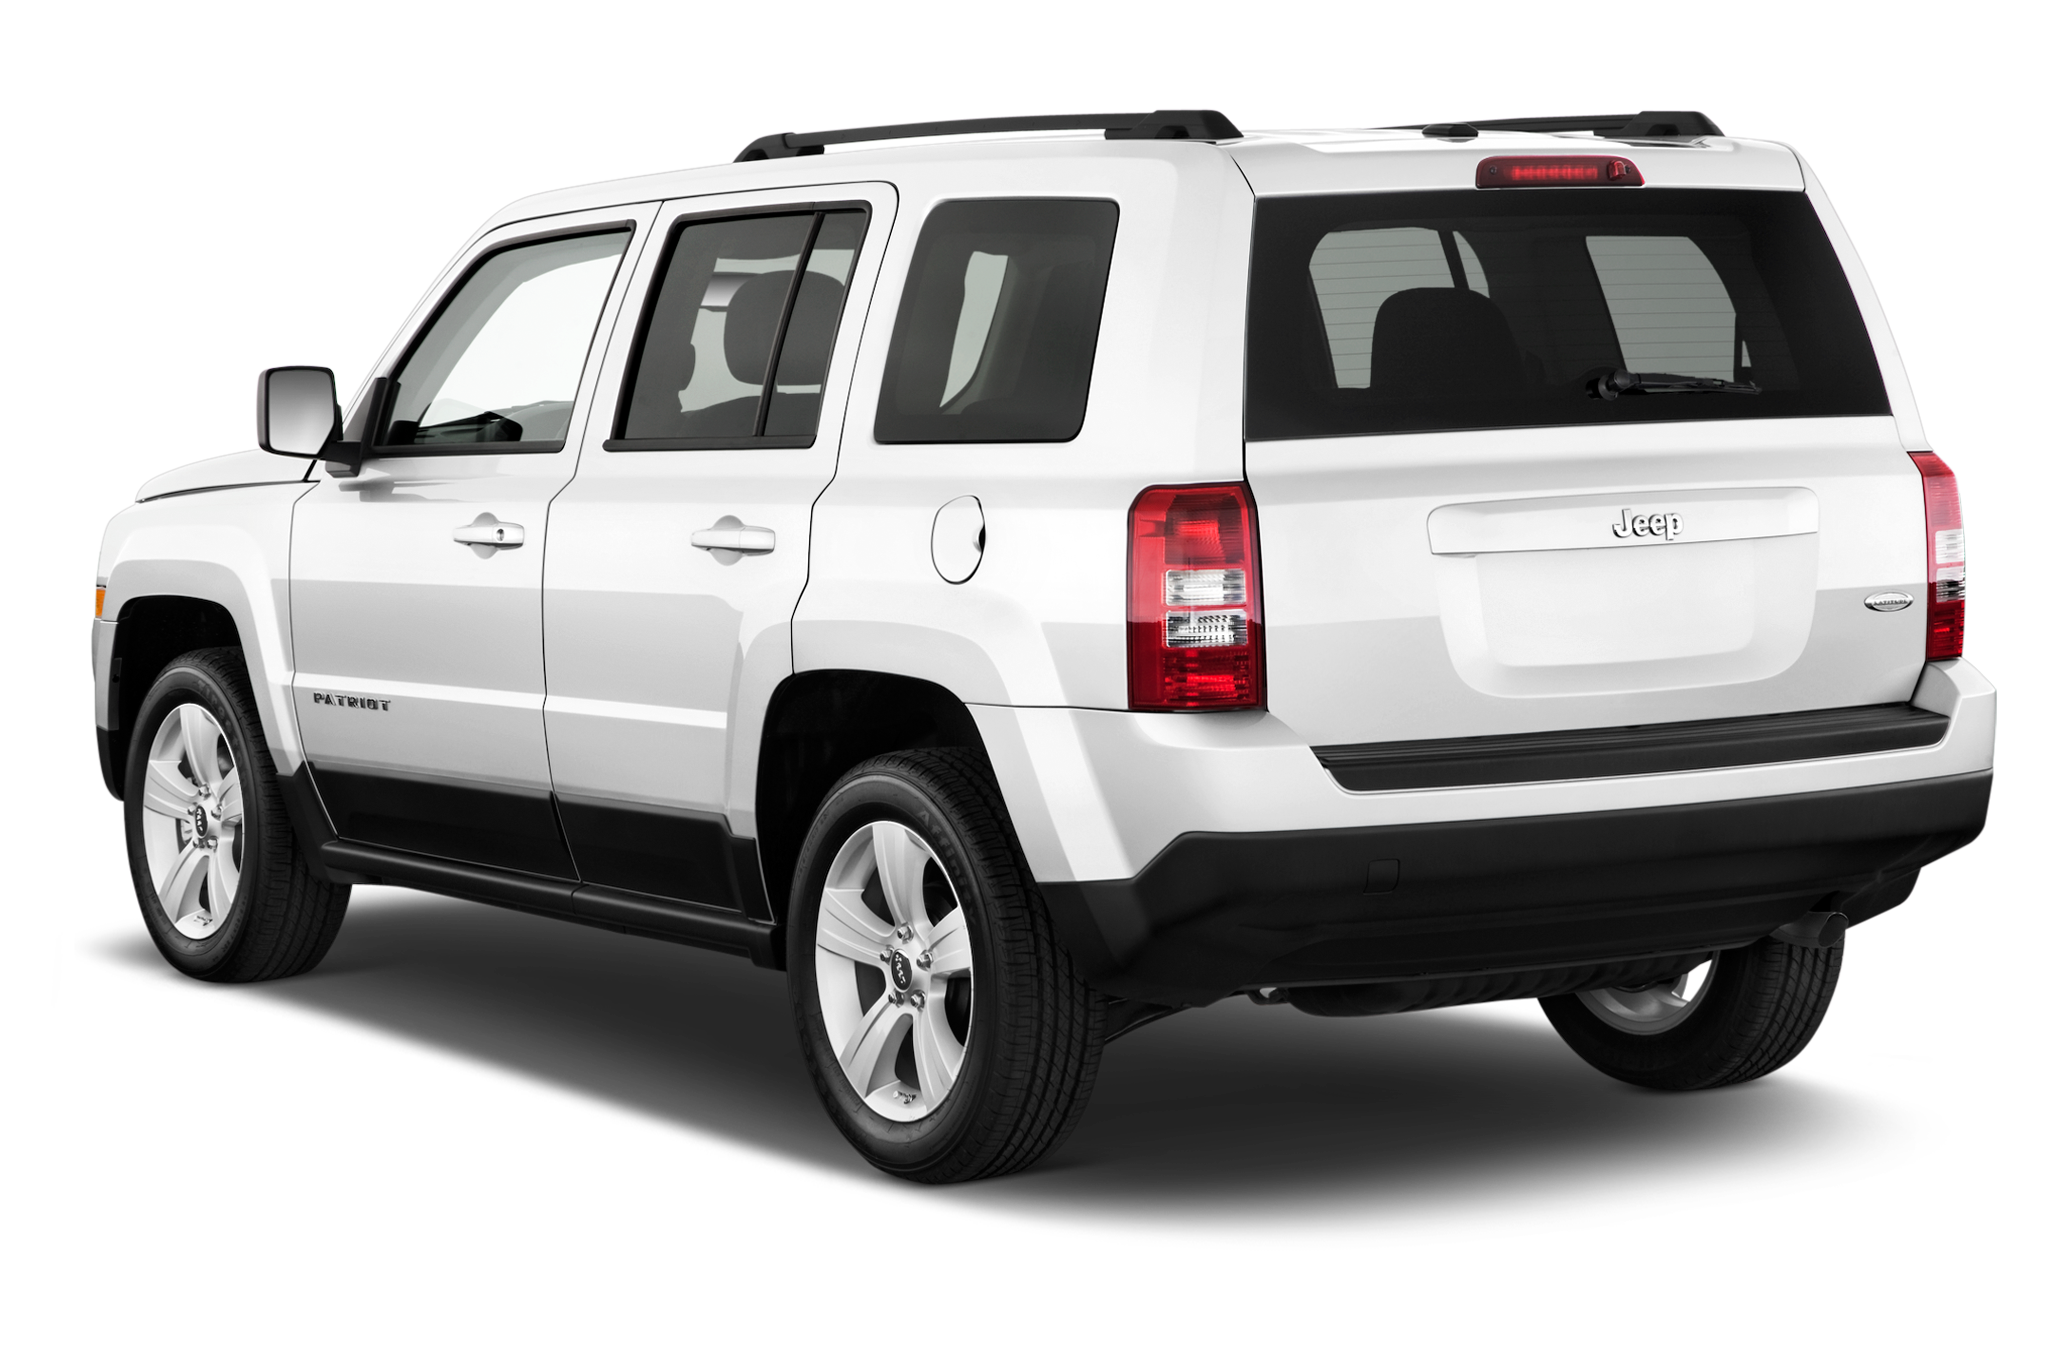 Back car clipart png stock Jeep Patriot back view PNG Clipart - Download free images in PNG png stock